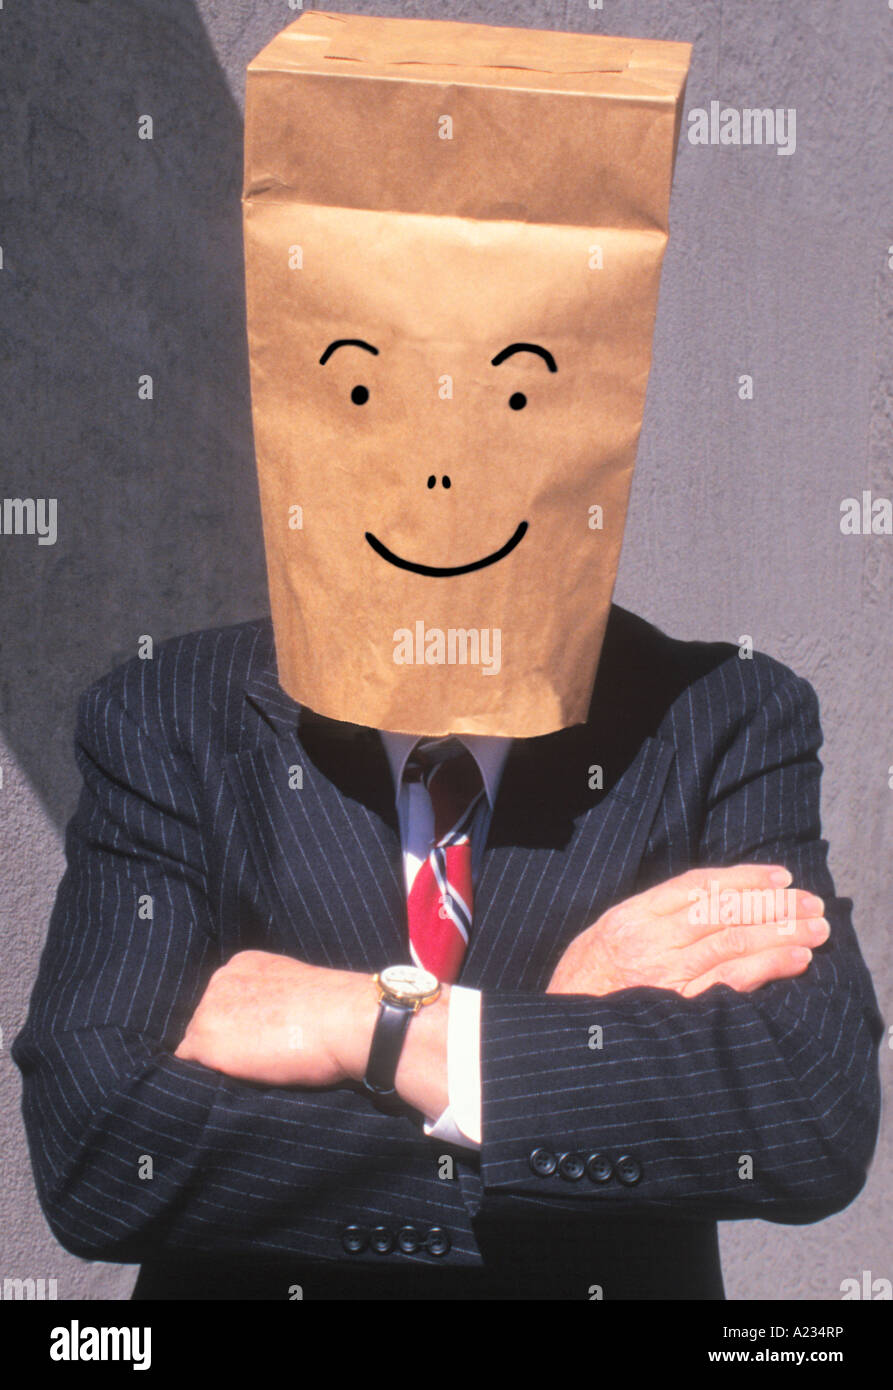 Businessman avec sac en papier brun sur la tête, Smiling Photo Stock